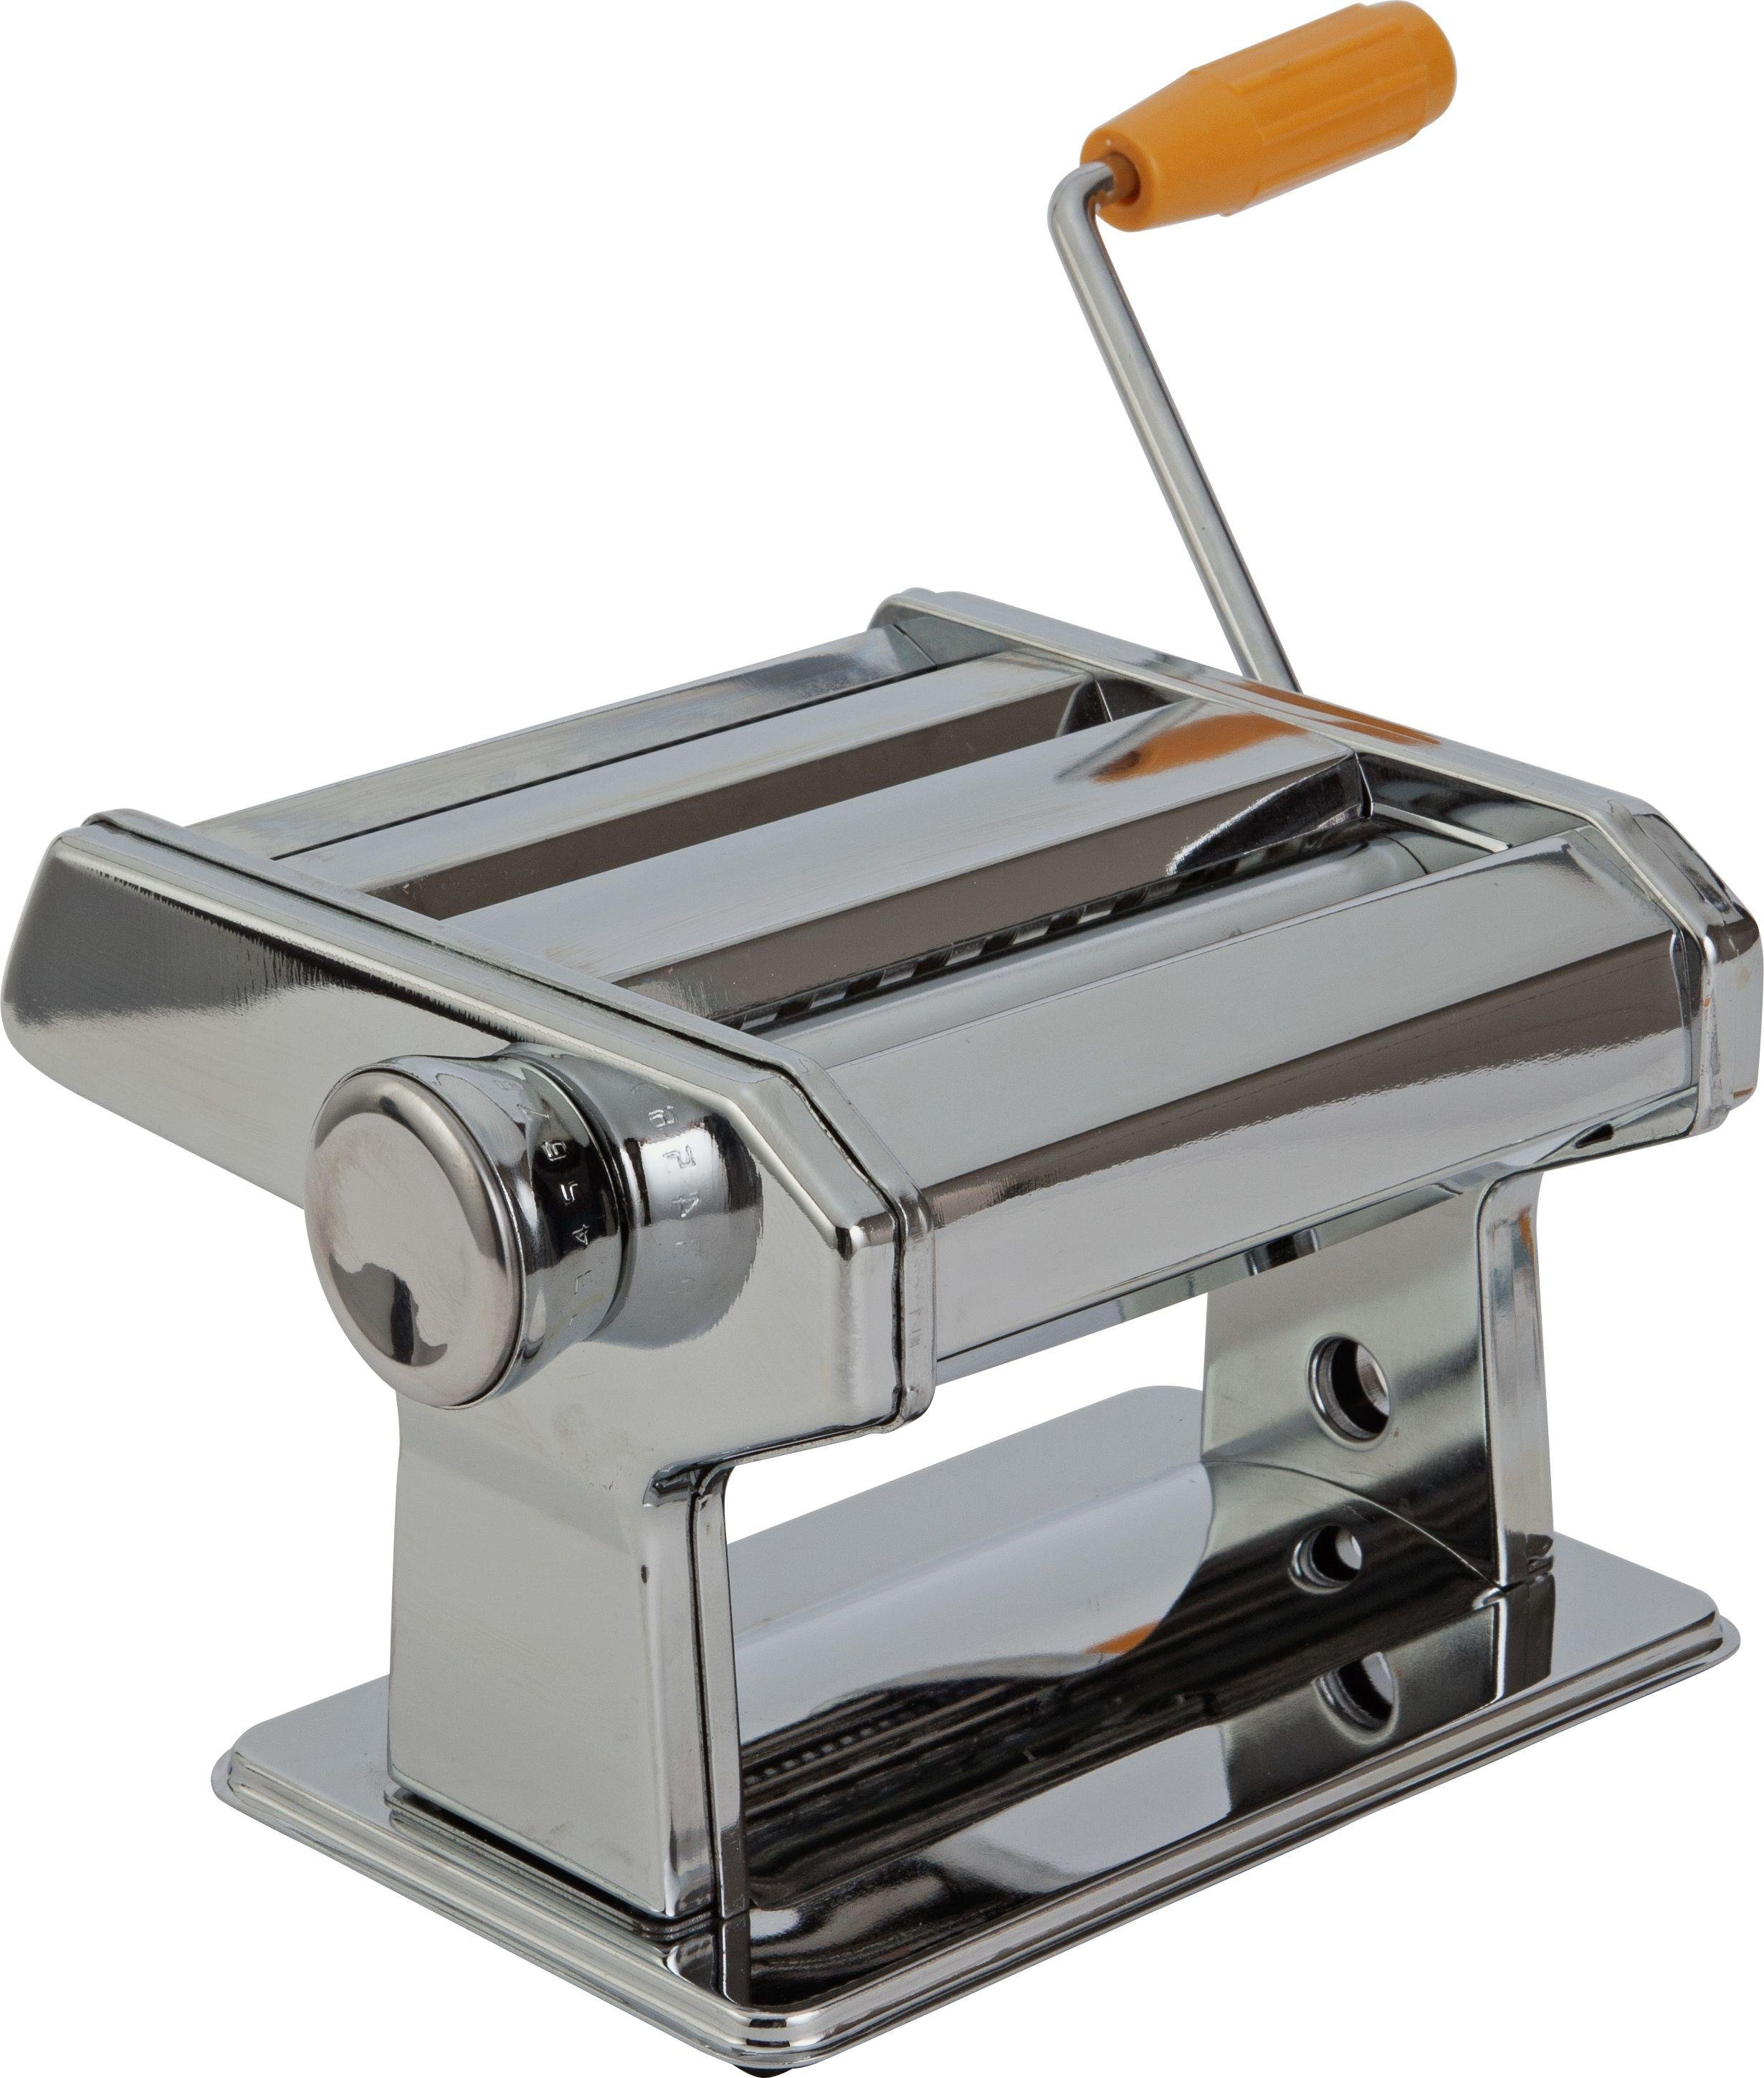 Image of Collection - Pasta Maker